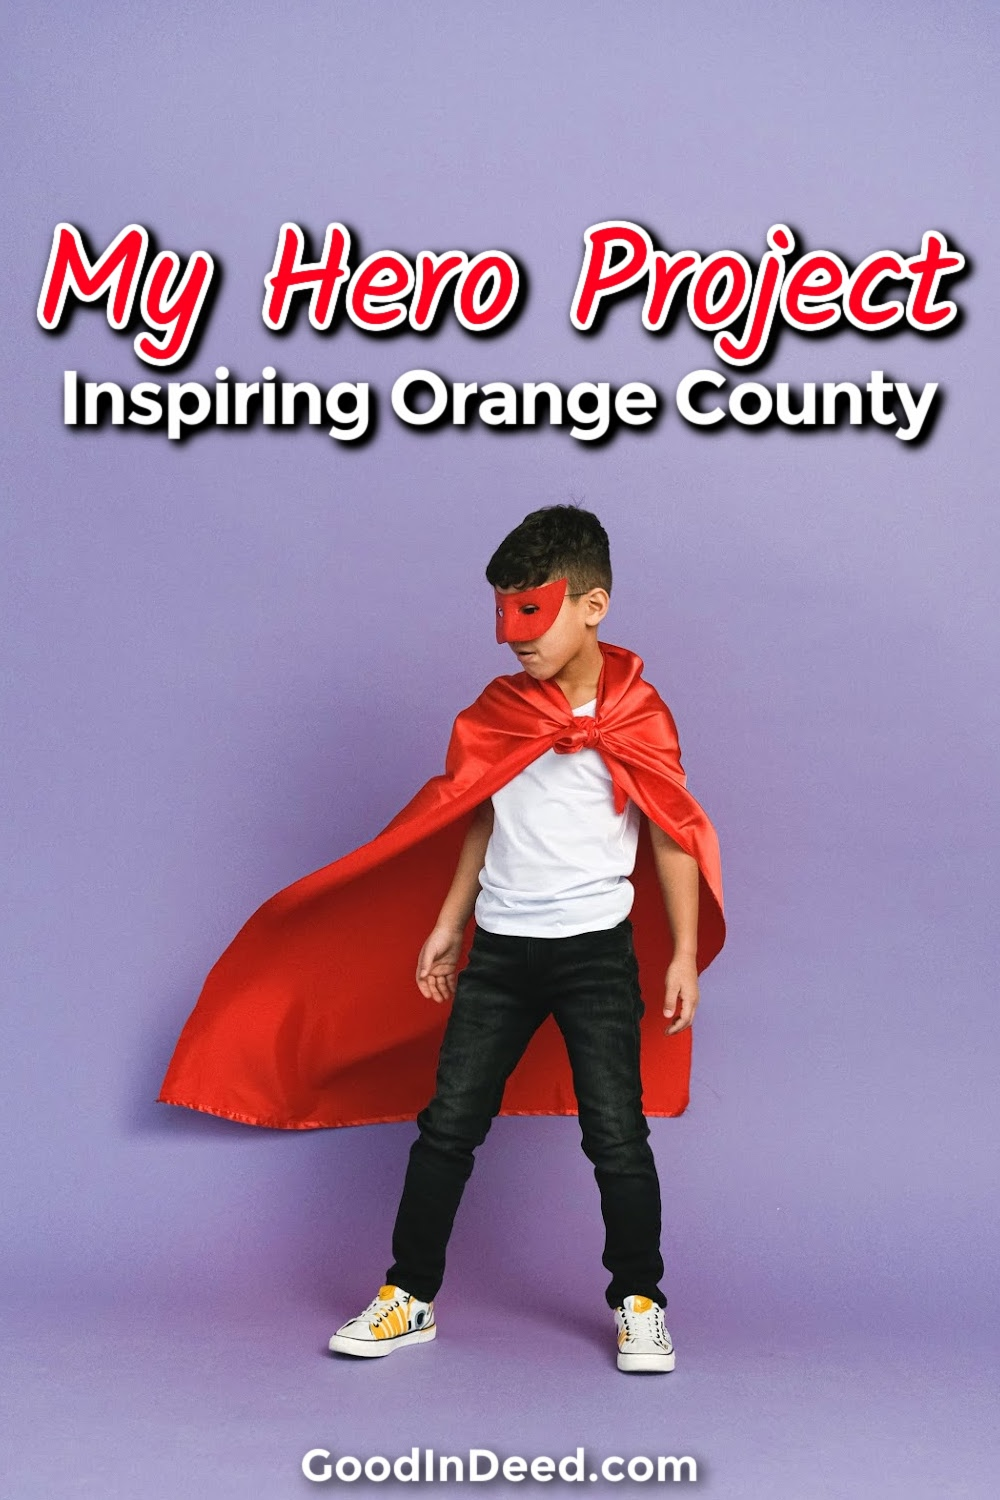 My Hero Project is an educational charity that shines a light on the real-life heroes of the past, present, and future.